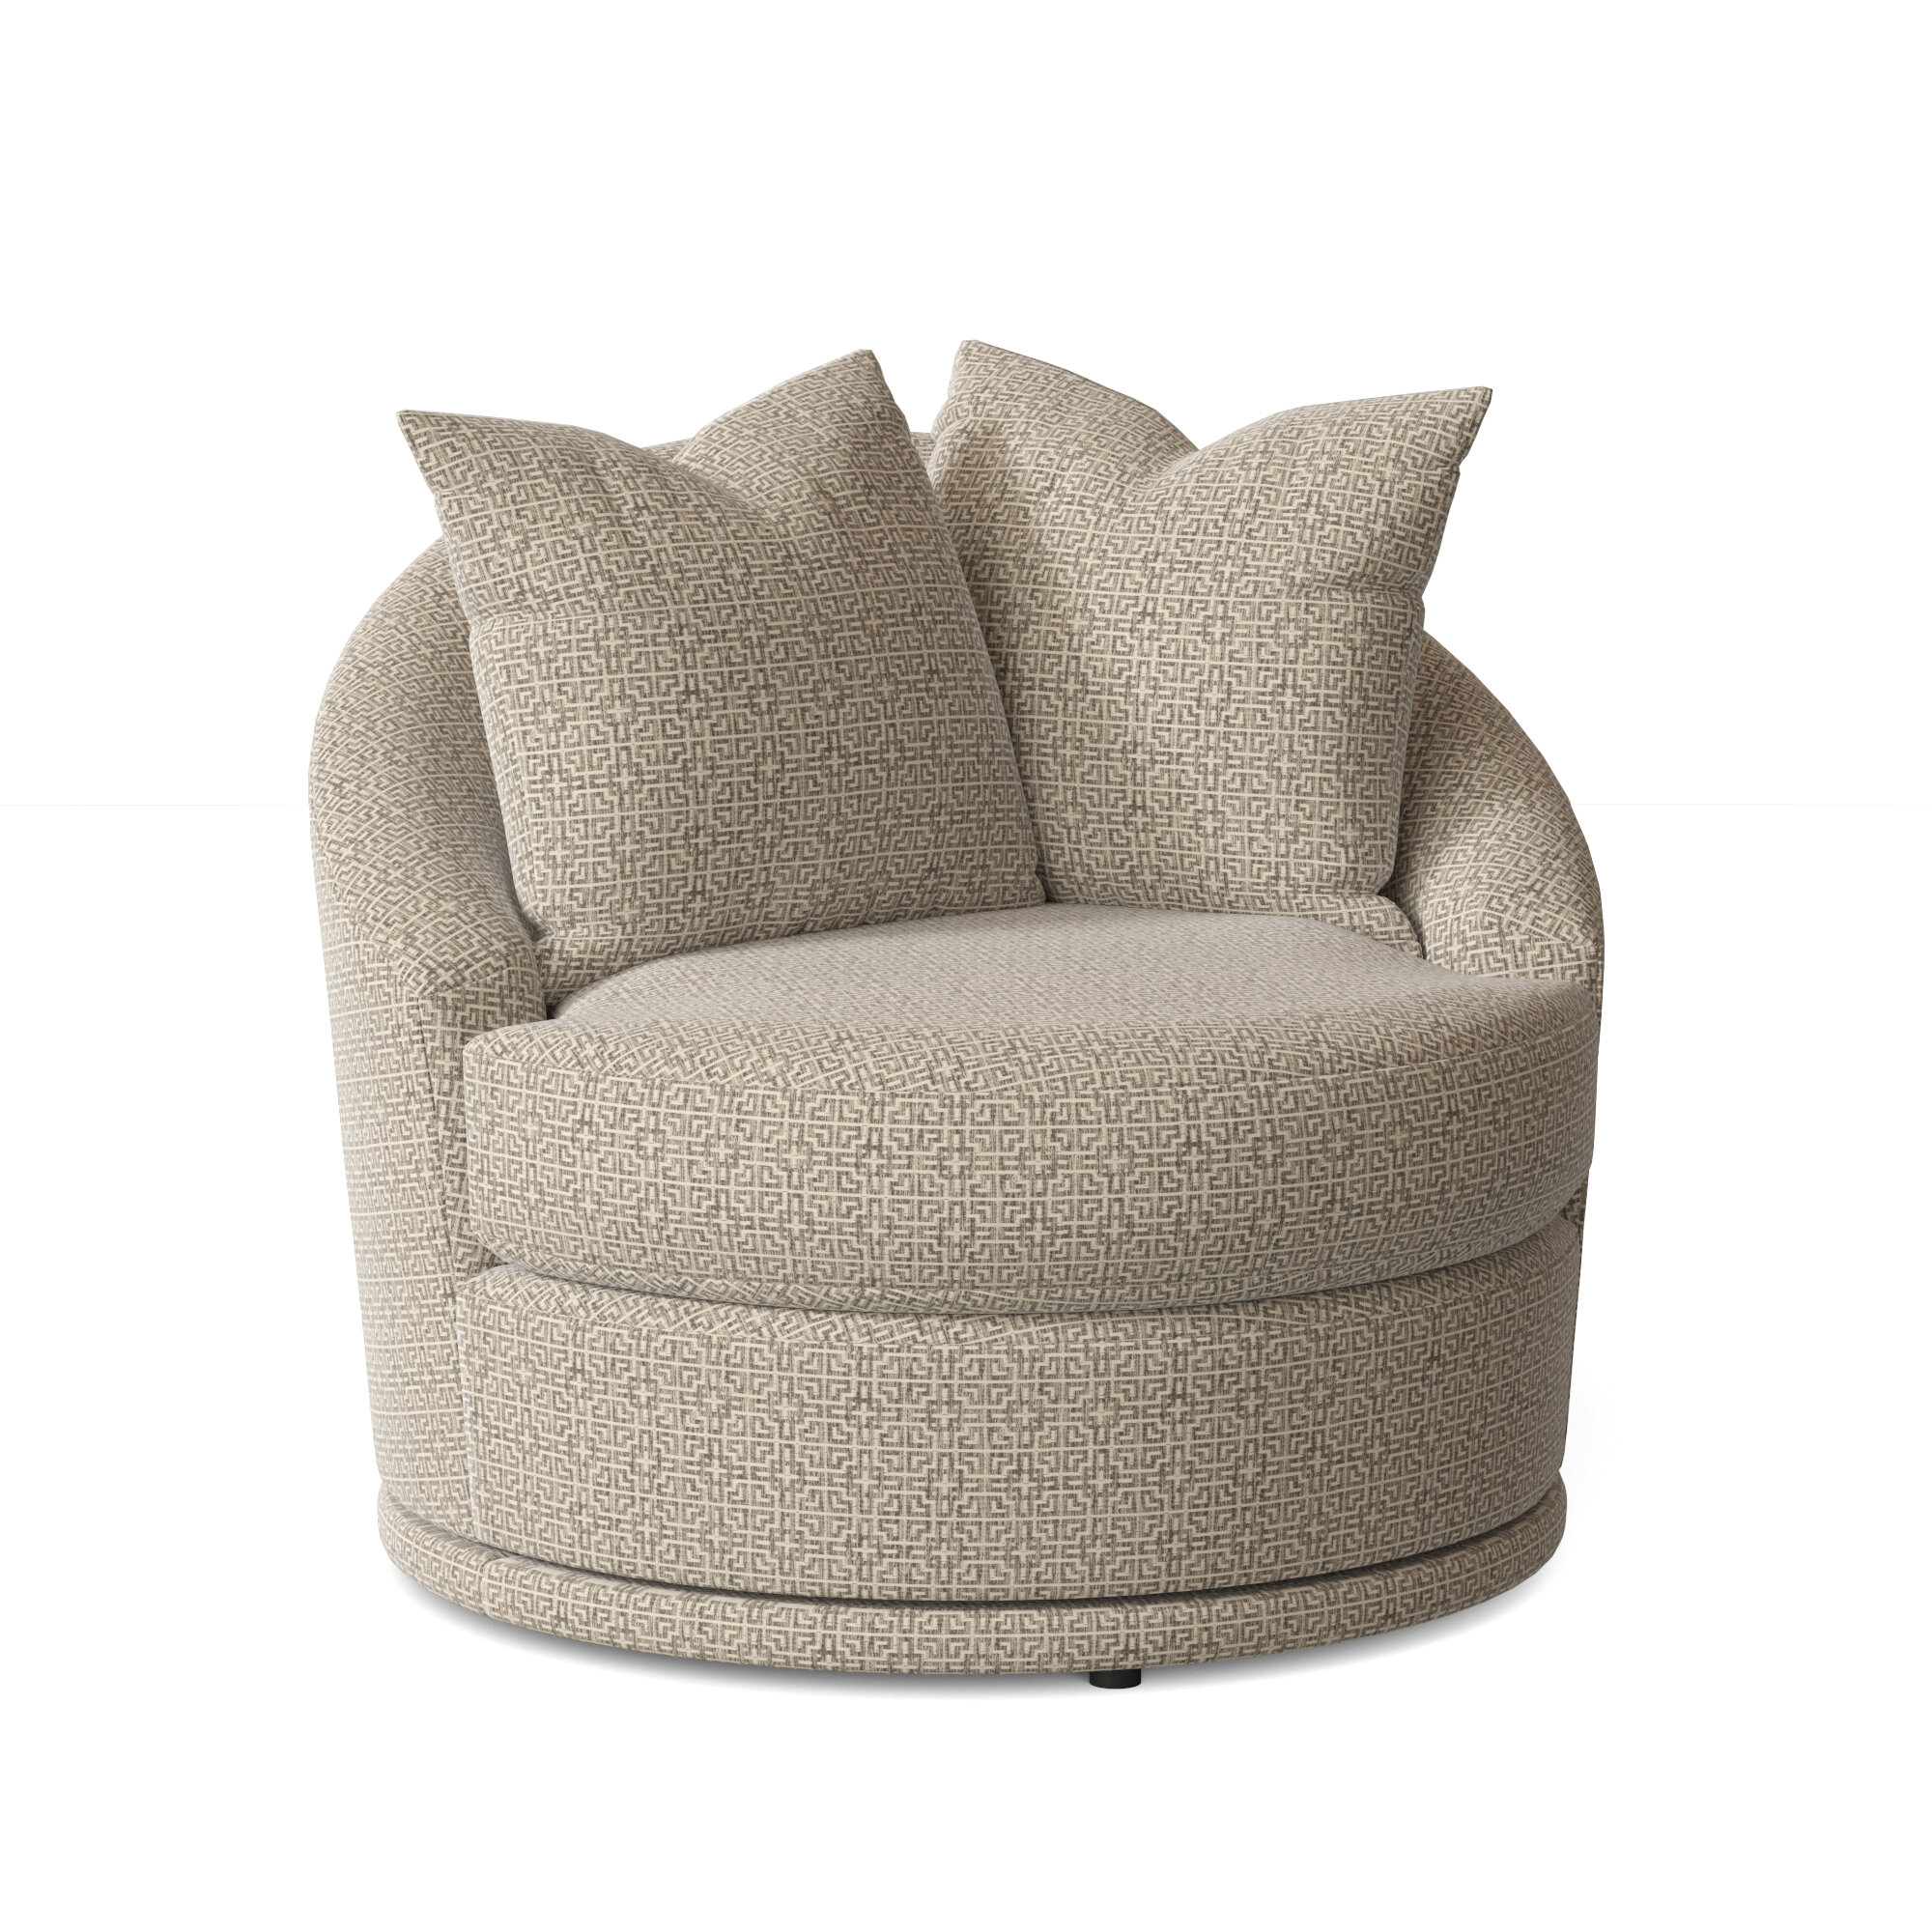 Barrel Yellow Accent Chairs You'Ll Love In 2021 | Wayfair Inside Alwillie Tufted Back Barrel Chairs (View 4 of 15)